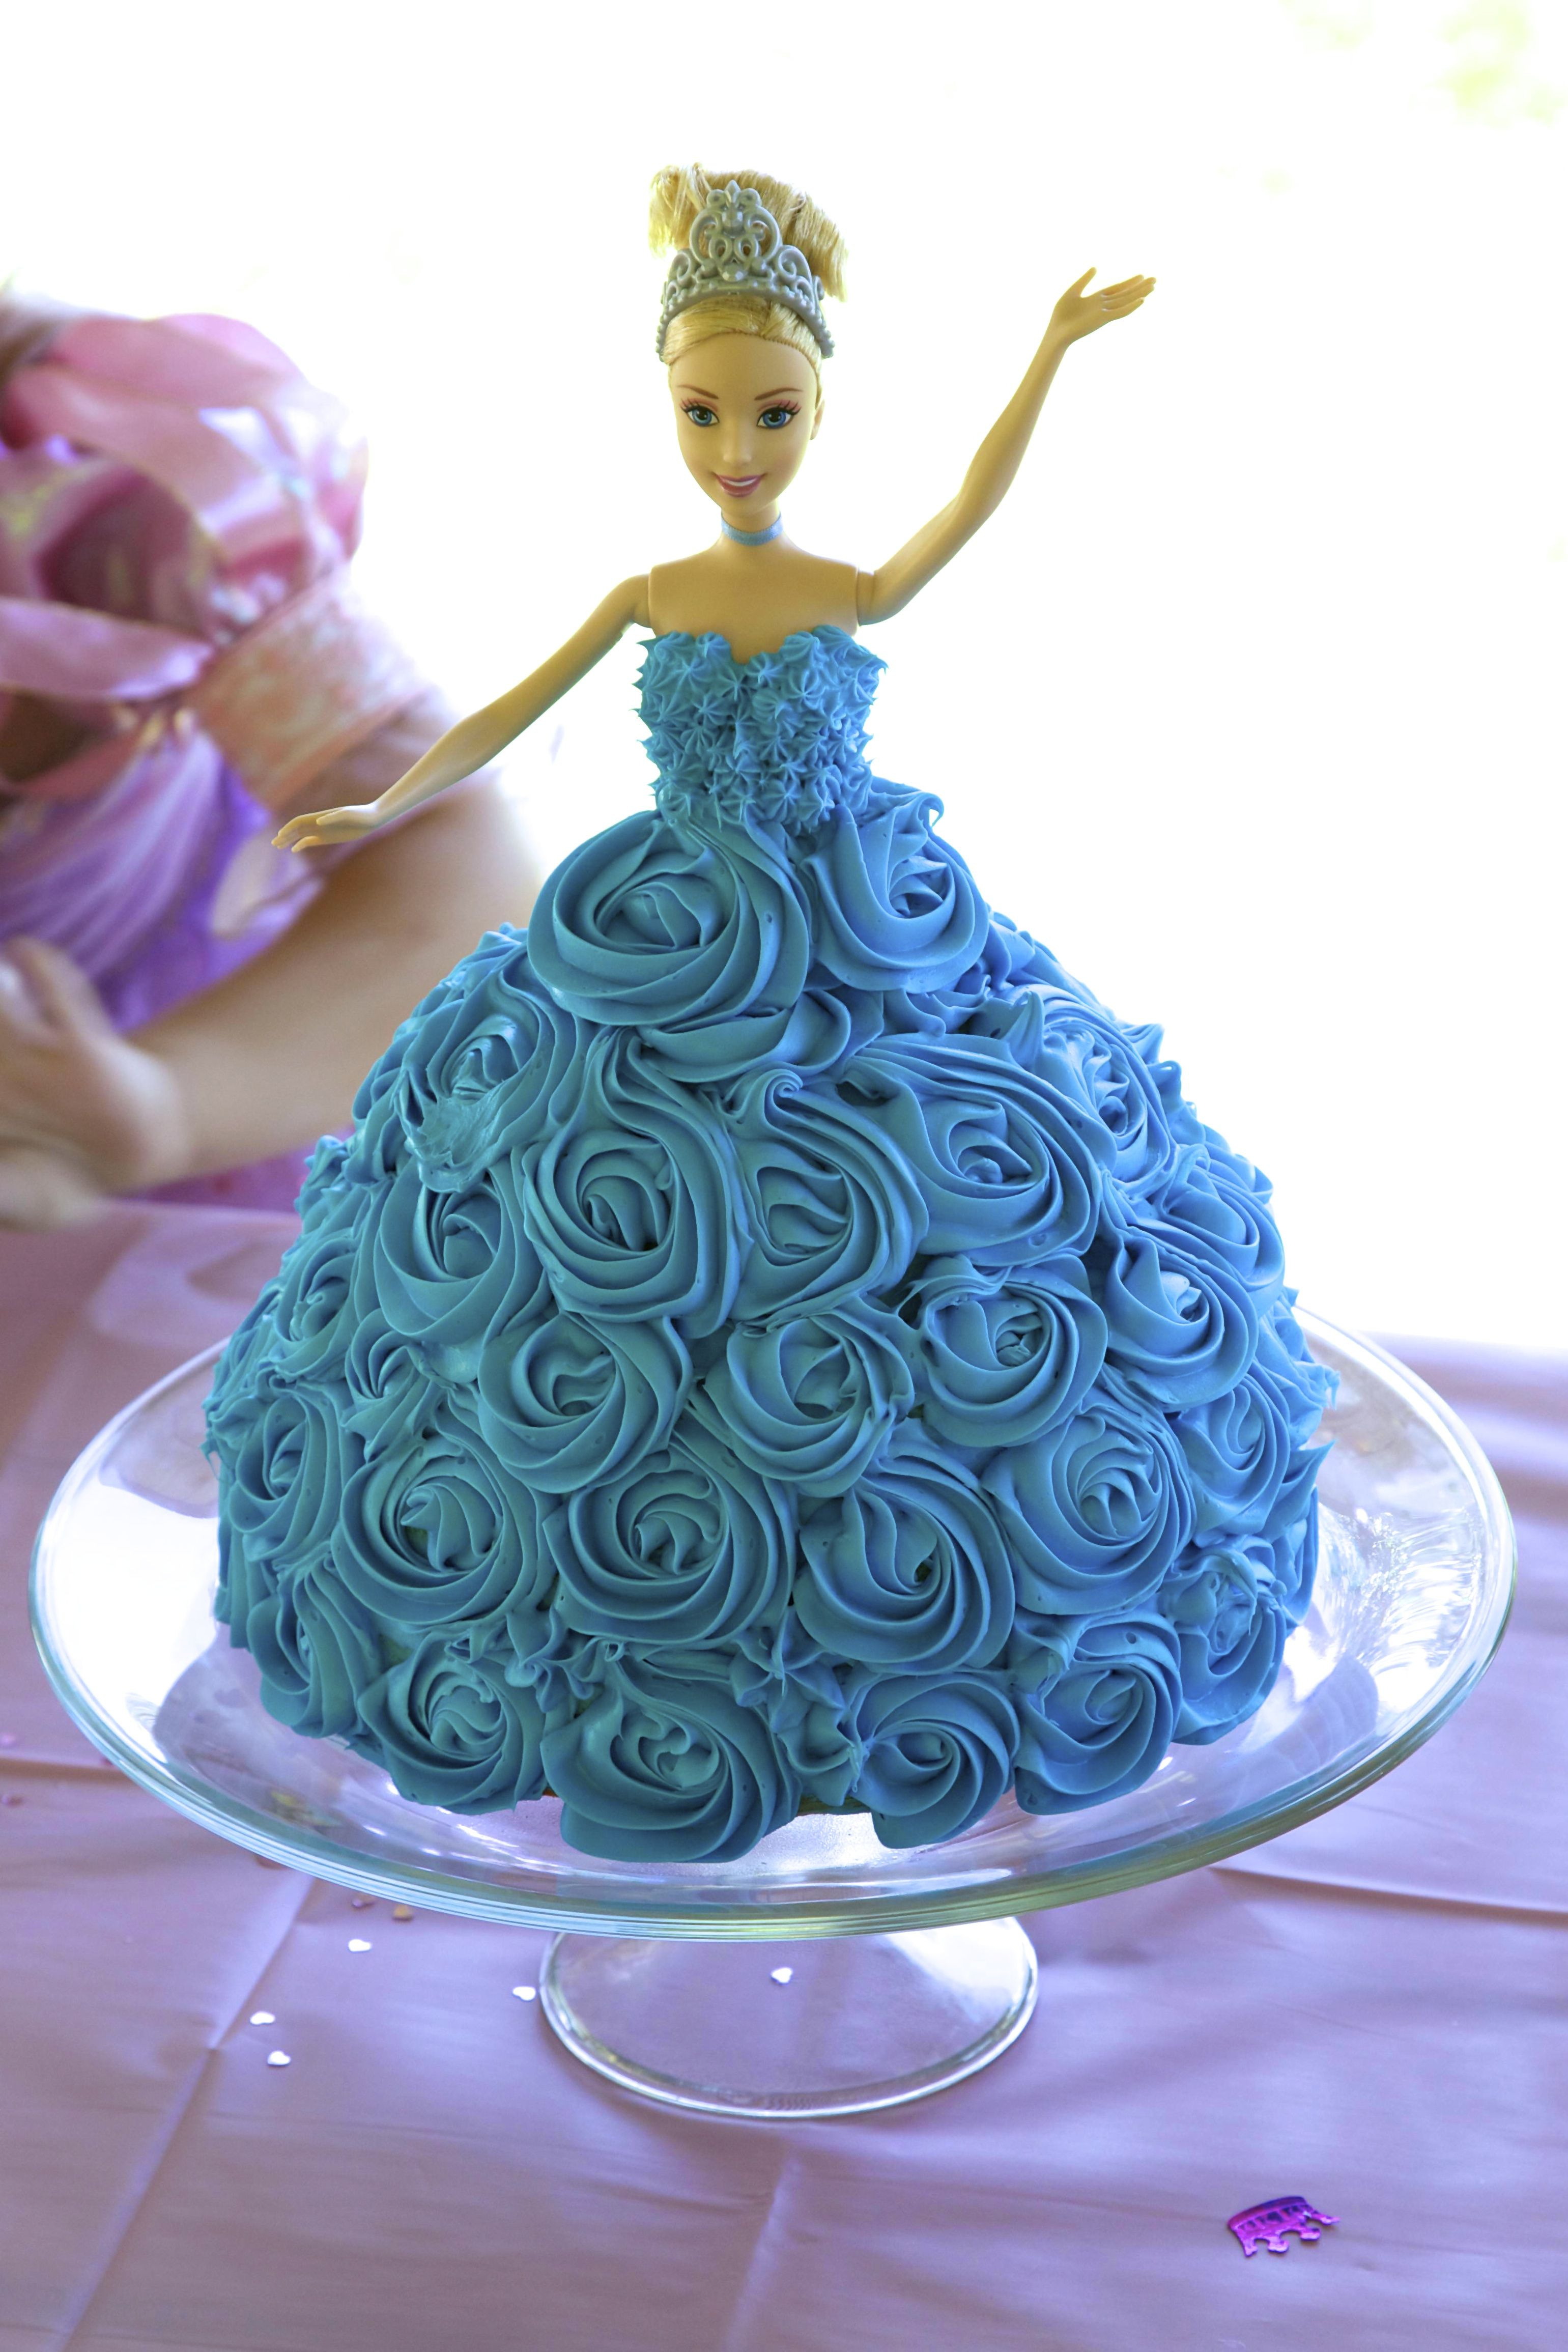 Cinderella Birthday Cakes Girl Friends I Turn 63 In January And This The Birthday Cake I Would